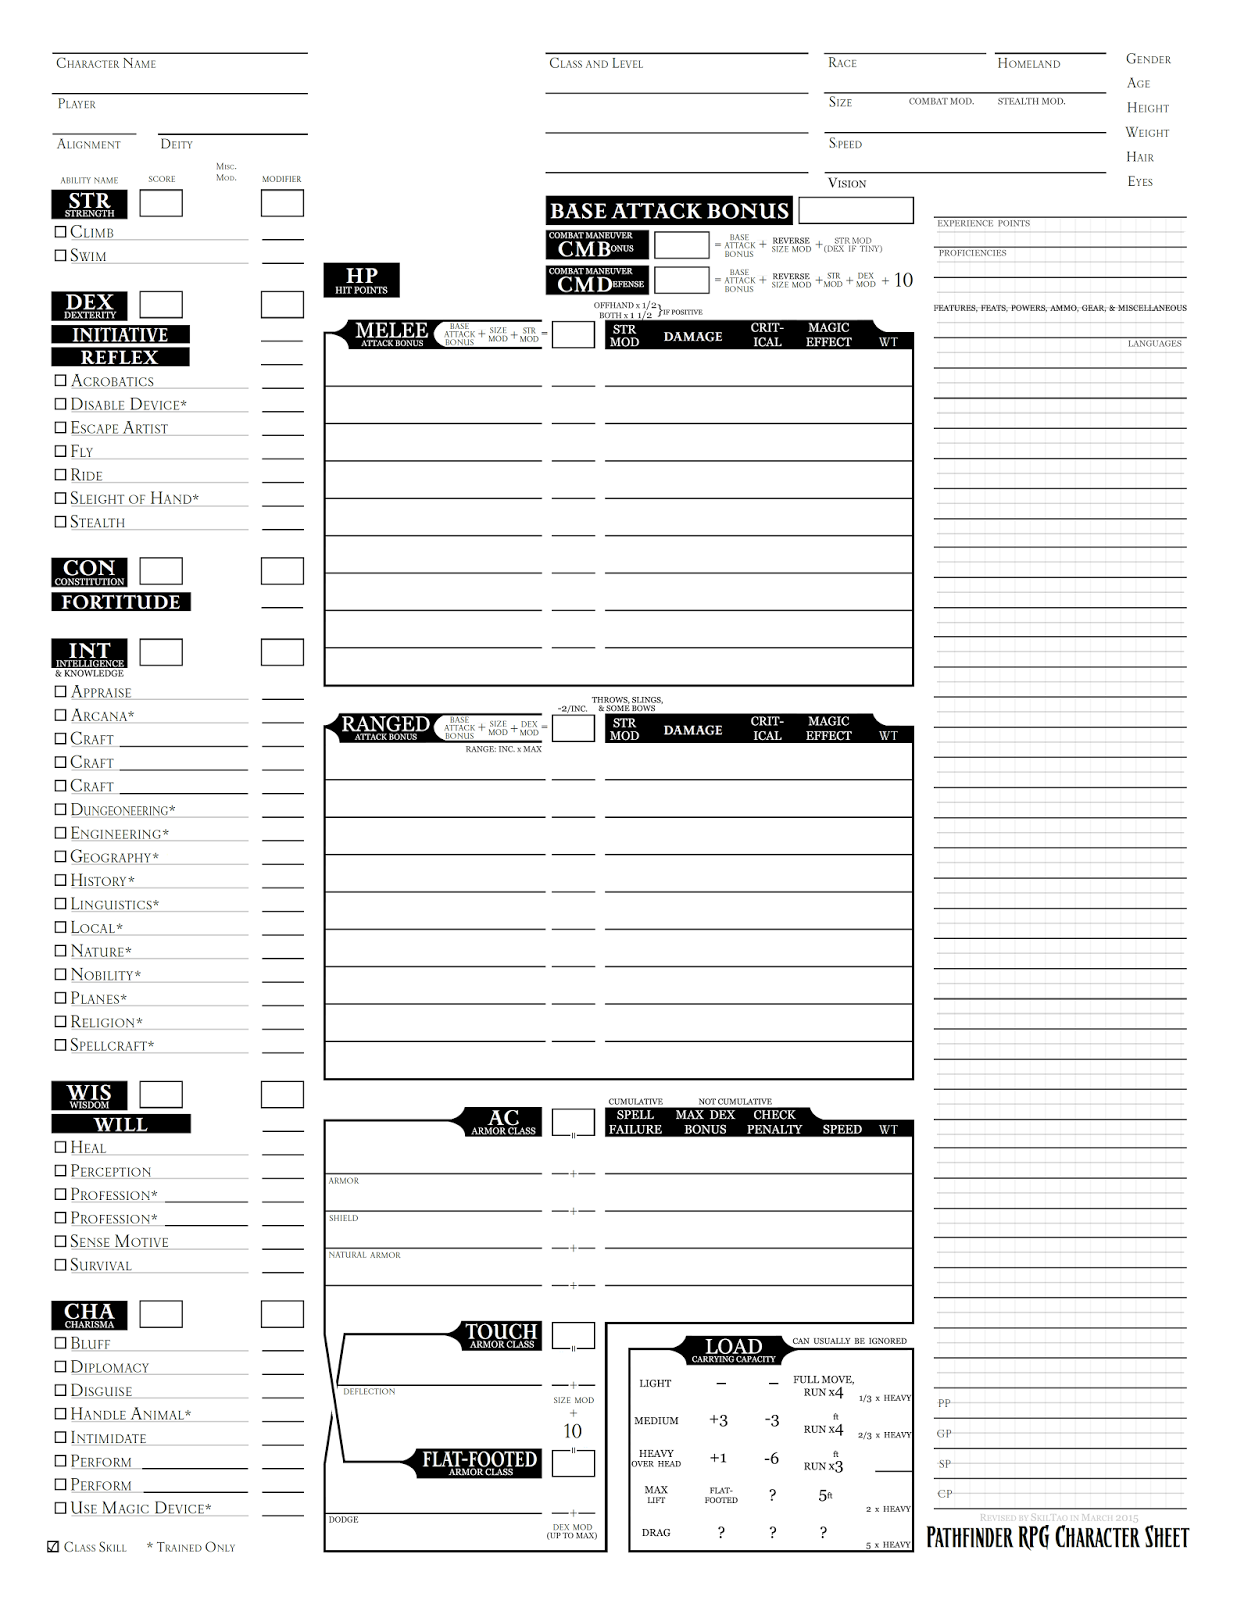 Paizo Character Sheet Images - Reverse Search